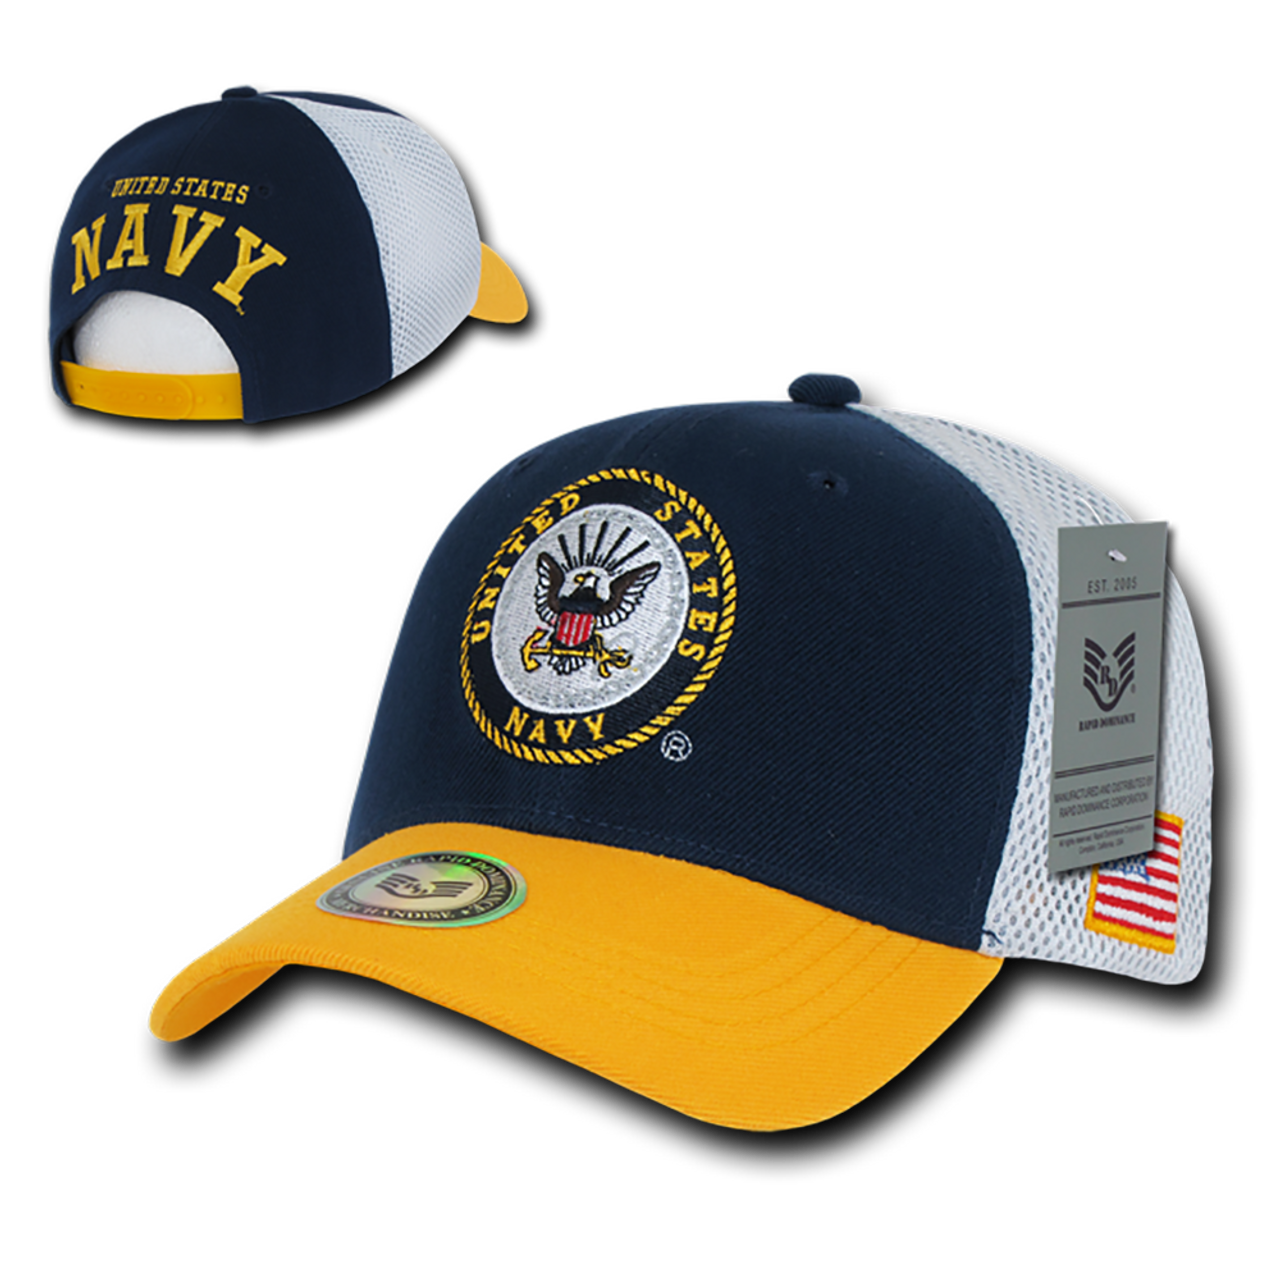 ... best price s010 military hat us navy cap cotton mesh navy gold u.s.  military hats 469fe 639452f972d0